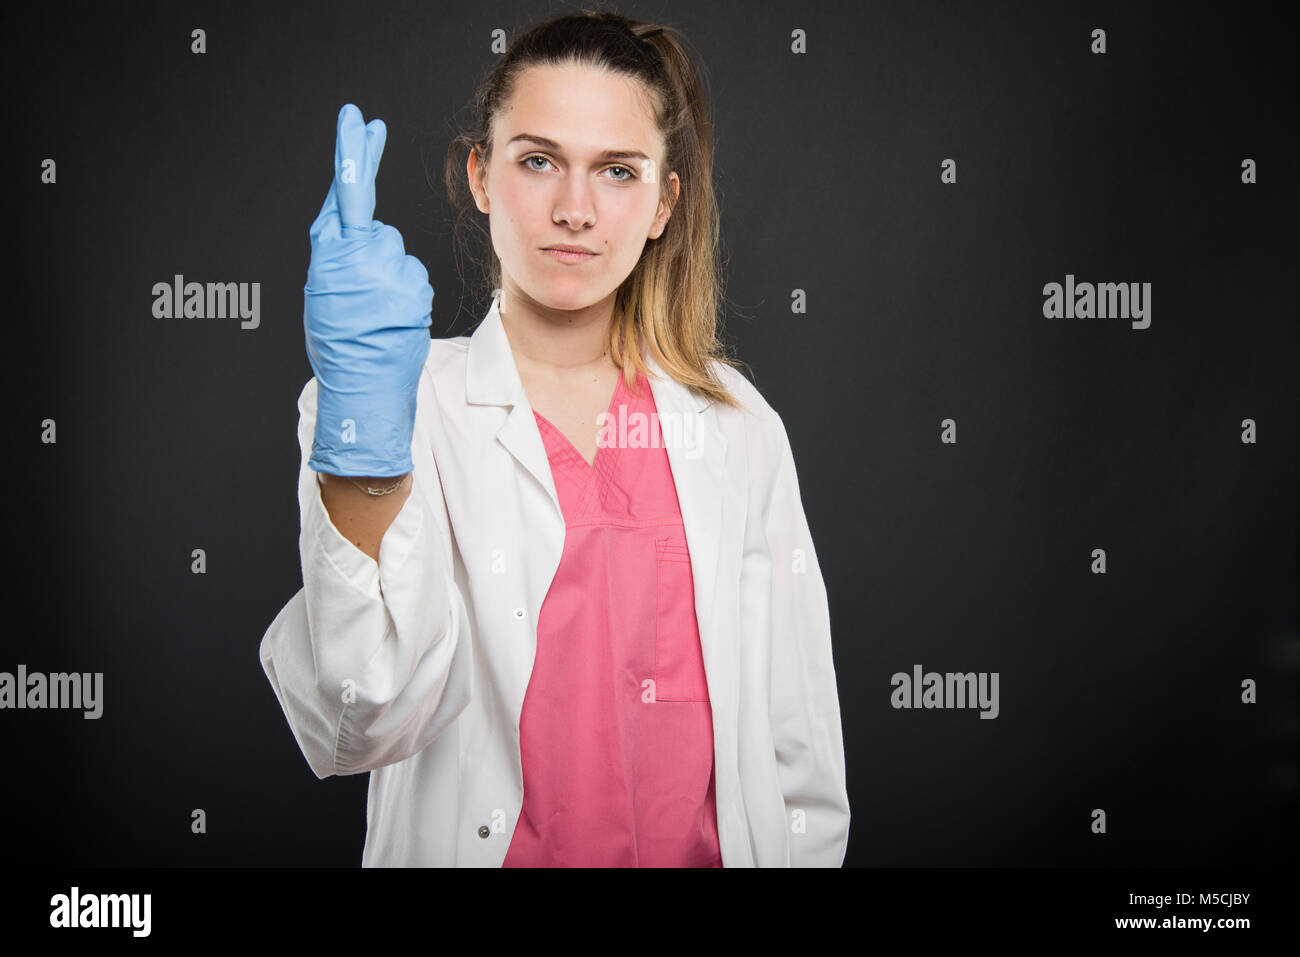 Young doctor portrait  showing fingers crossed wearing sterile gloves on black background with copyspace advertising - Stock Image